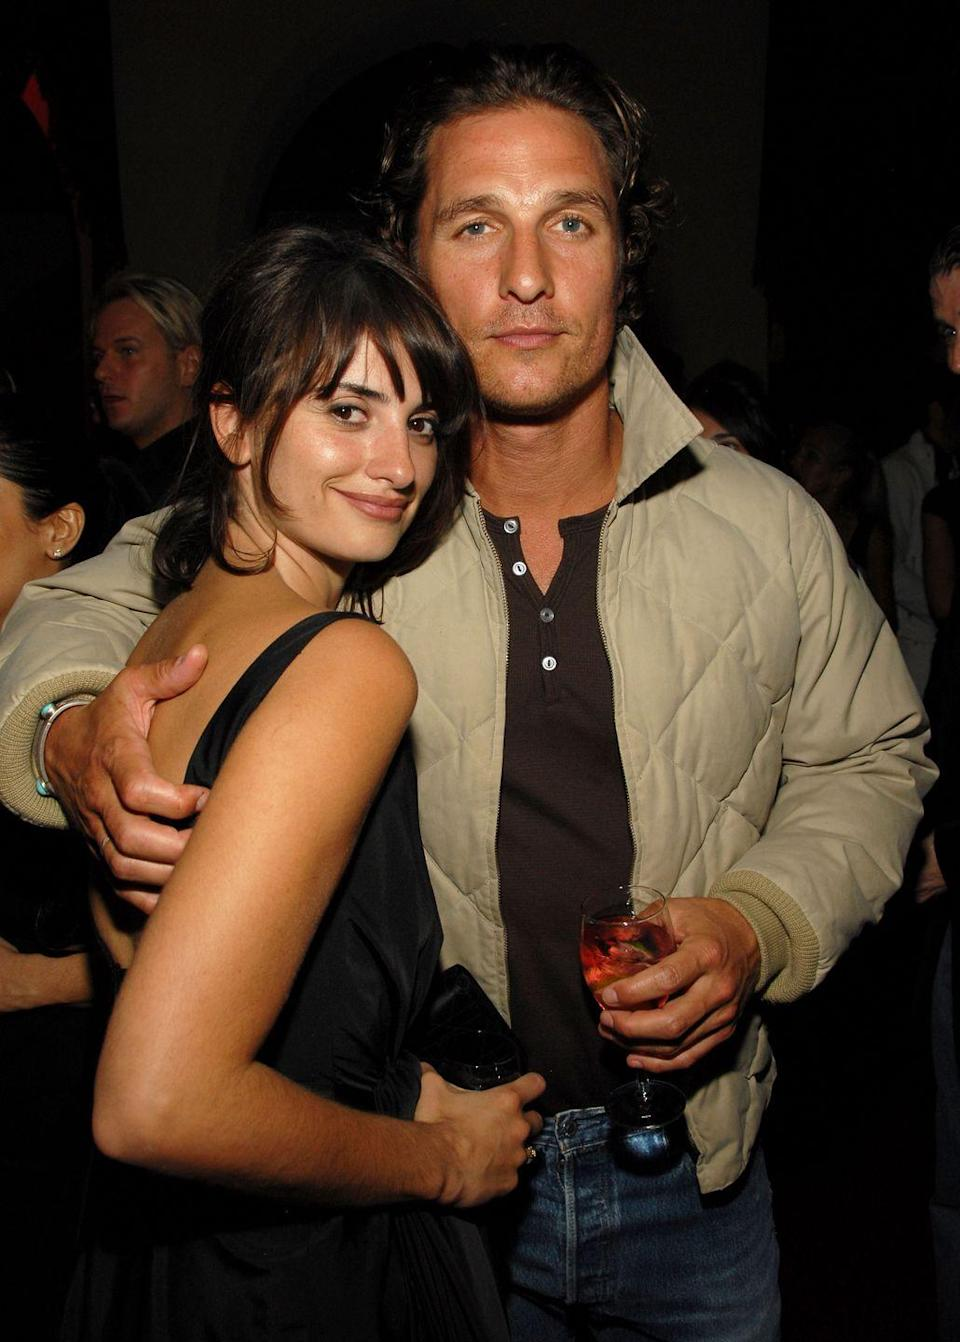 """<p>Penélope Cruz and Matthew McConaughey were not nearly as famous as they are now when they started dating in 2005. The pair got together while filming Sahara in Morocco. The relationship was short-lived because Penélope and Matthew <a href=""""https://people.com/celebrity/matthew-mcconaughey-penelope-cruz-are-separating/"""" rel=""""nofollow noopener"""" target=""""_blank"""" data-ylk=""""slk:broke up in June 2006"""" class=""""link rapid-noclick-resp"""">broke up in June 2006</a>.</p>"""